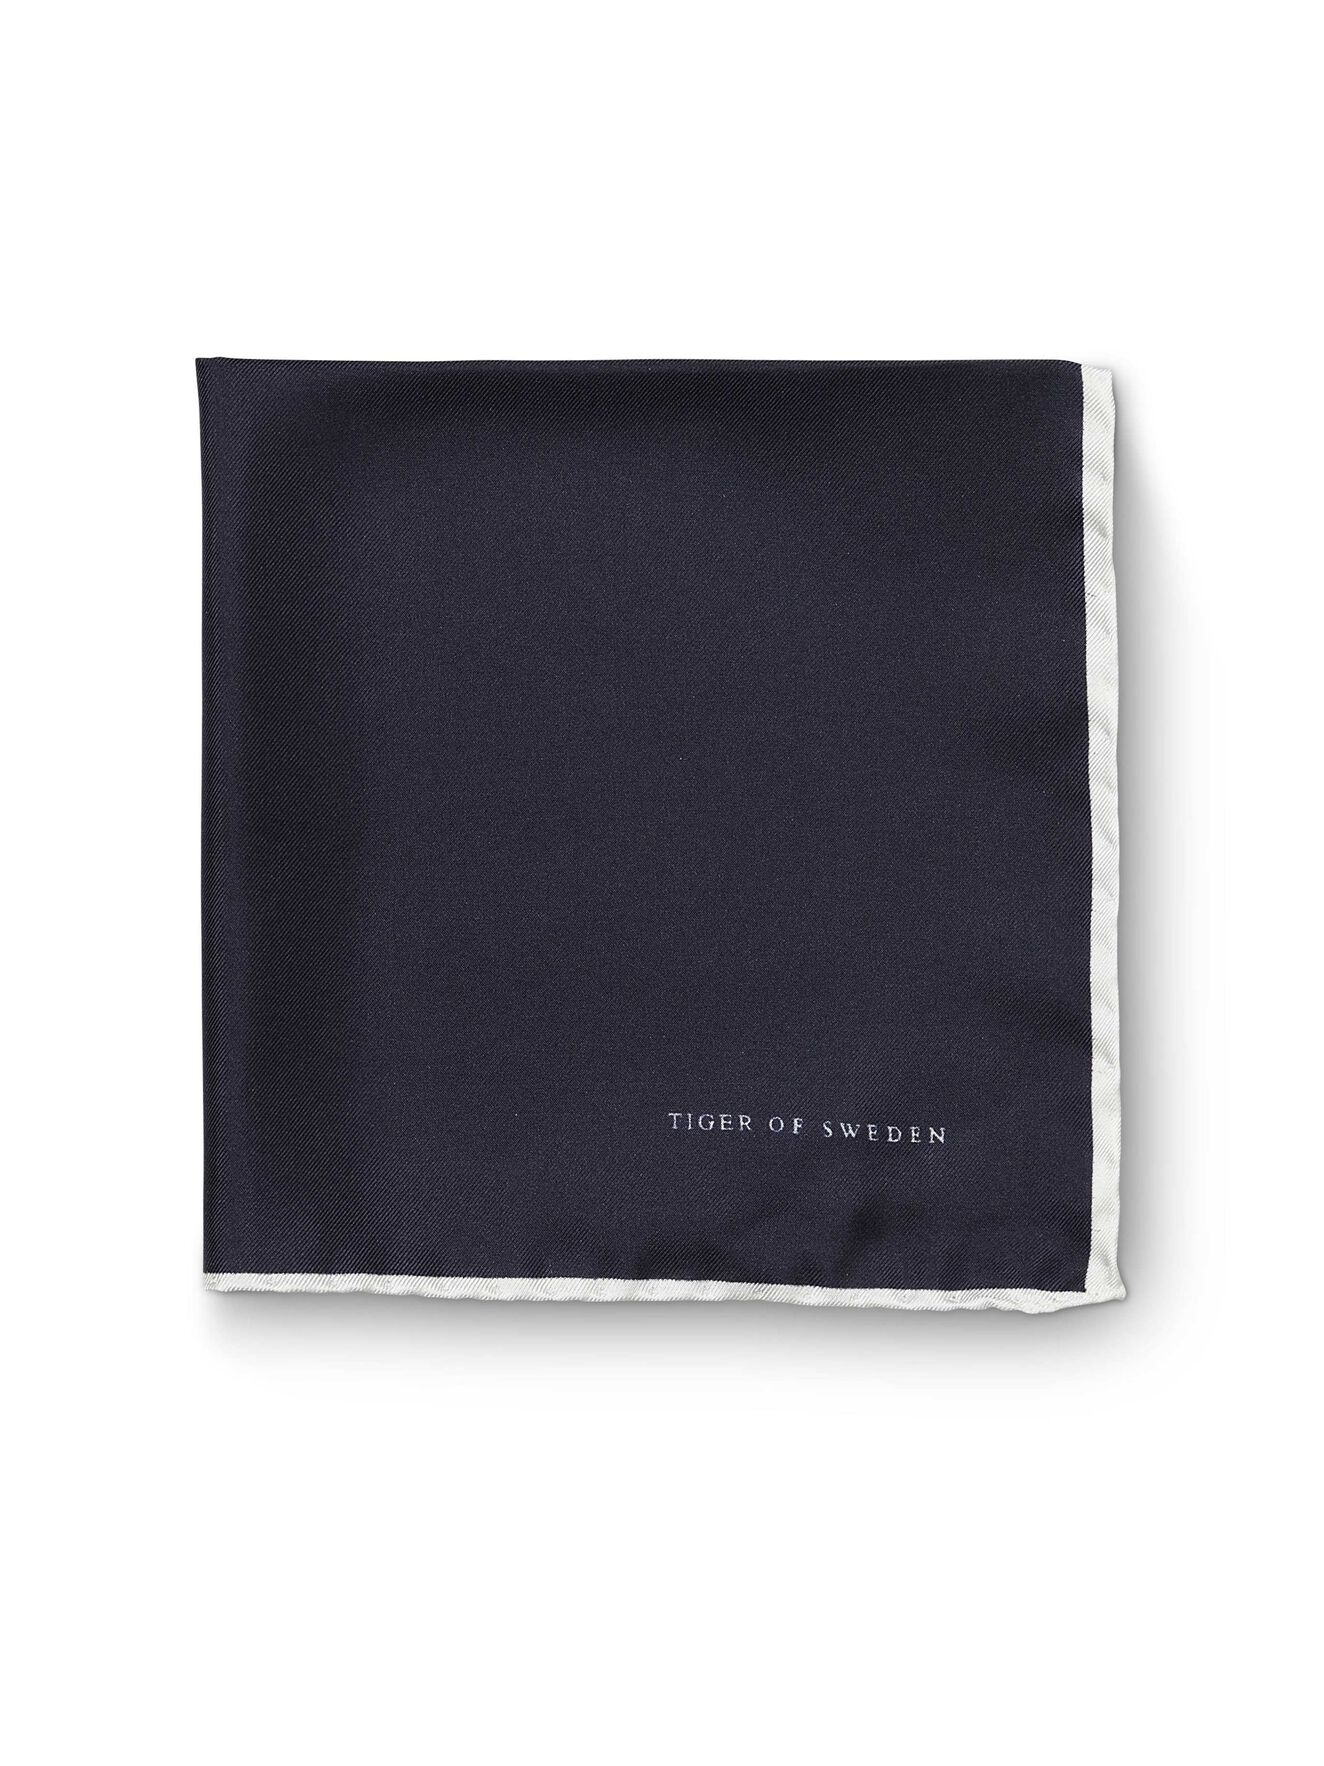 Luserna Silk Handkerchief in Indian Blue from Tiger of Sweden